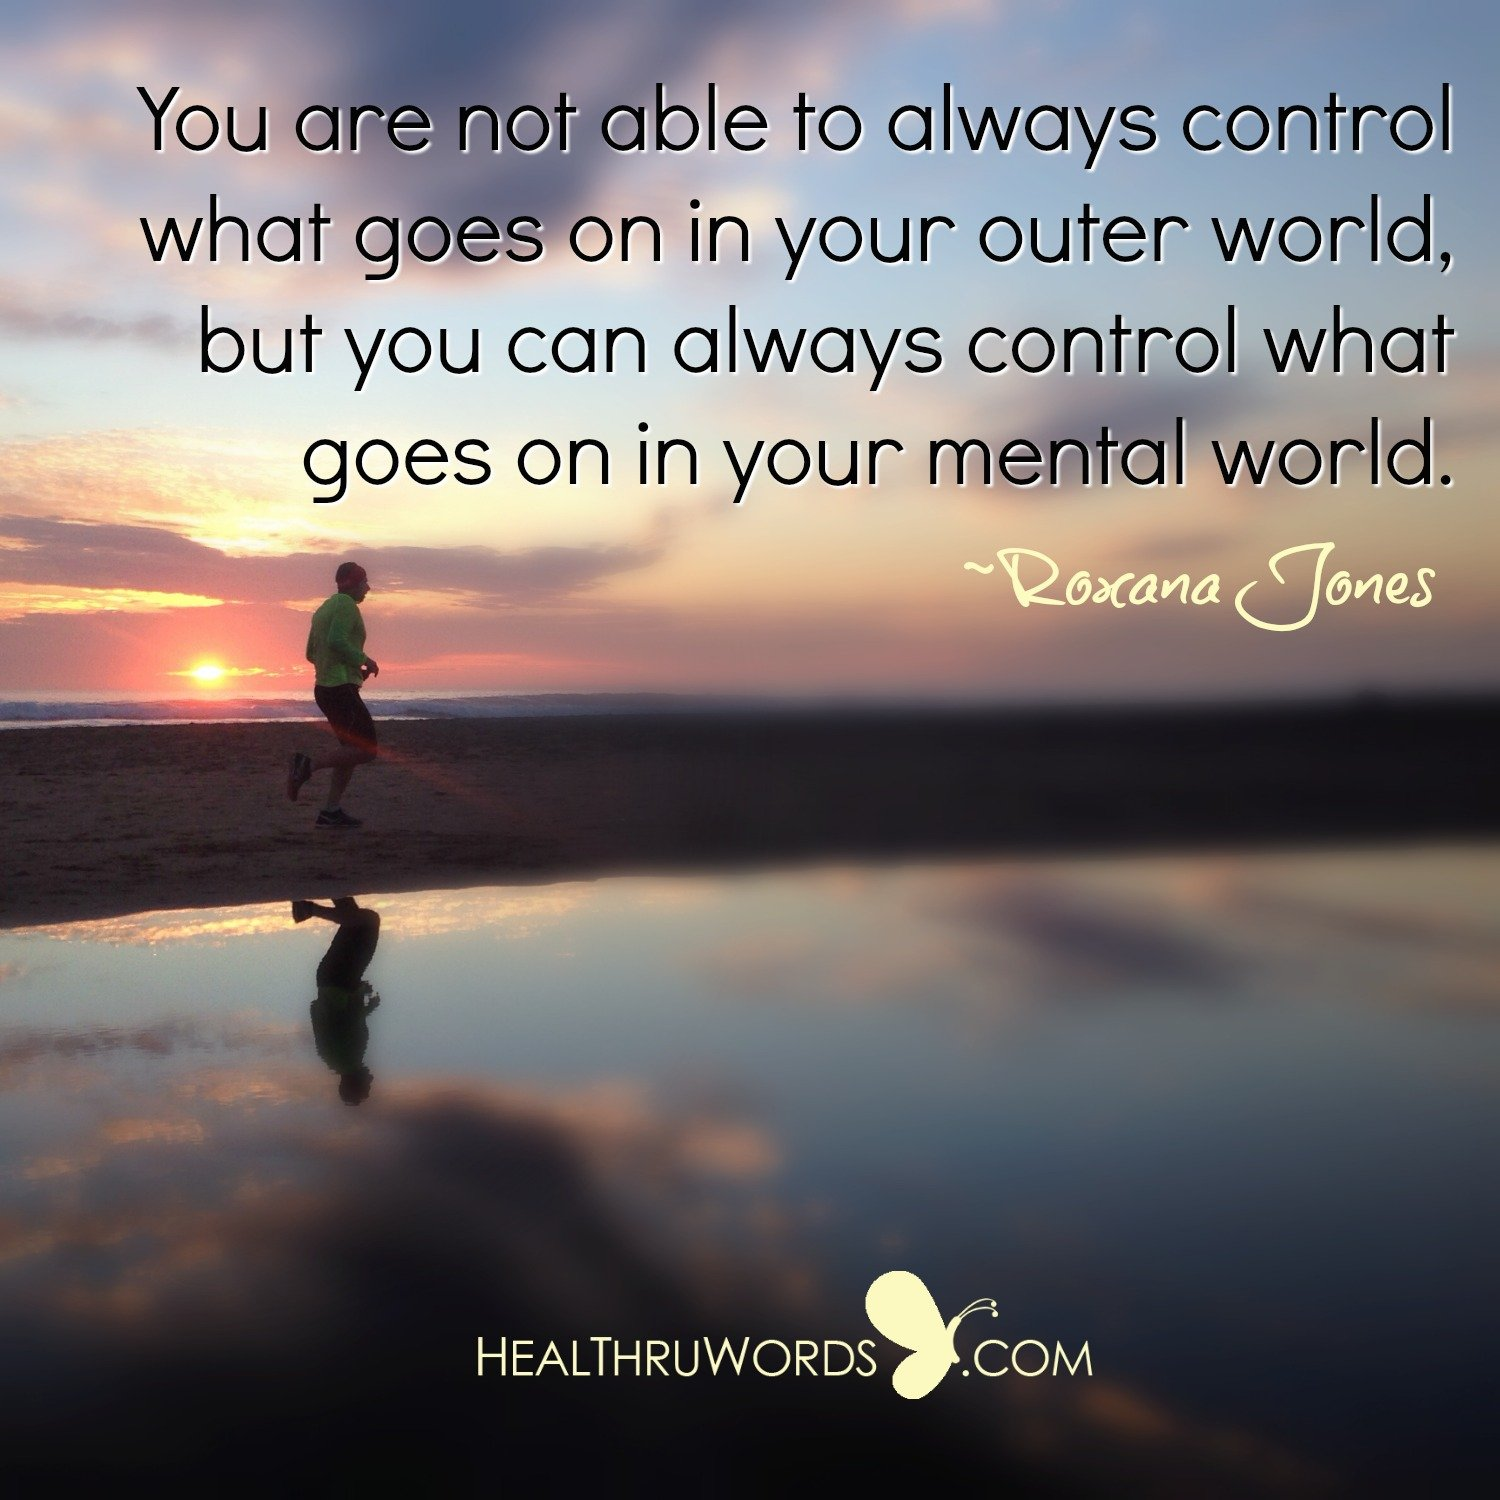 Inspirational Image: Controlling your Mind